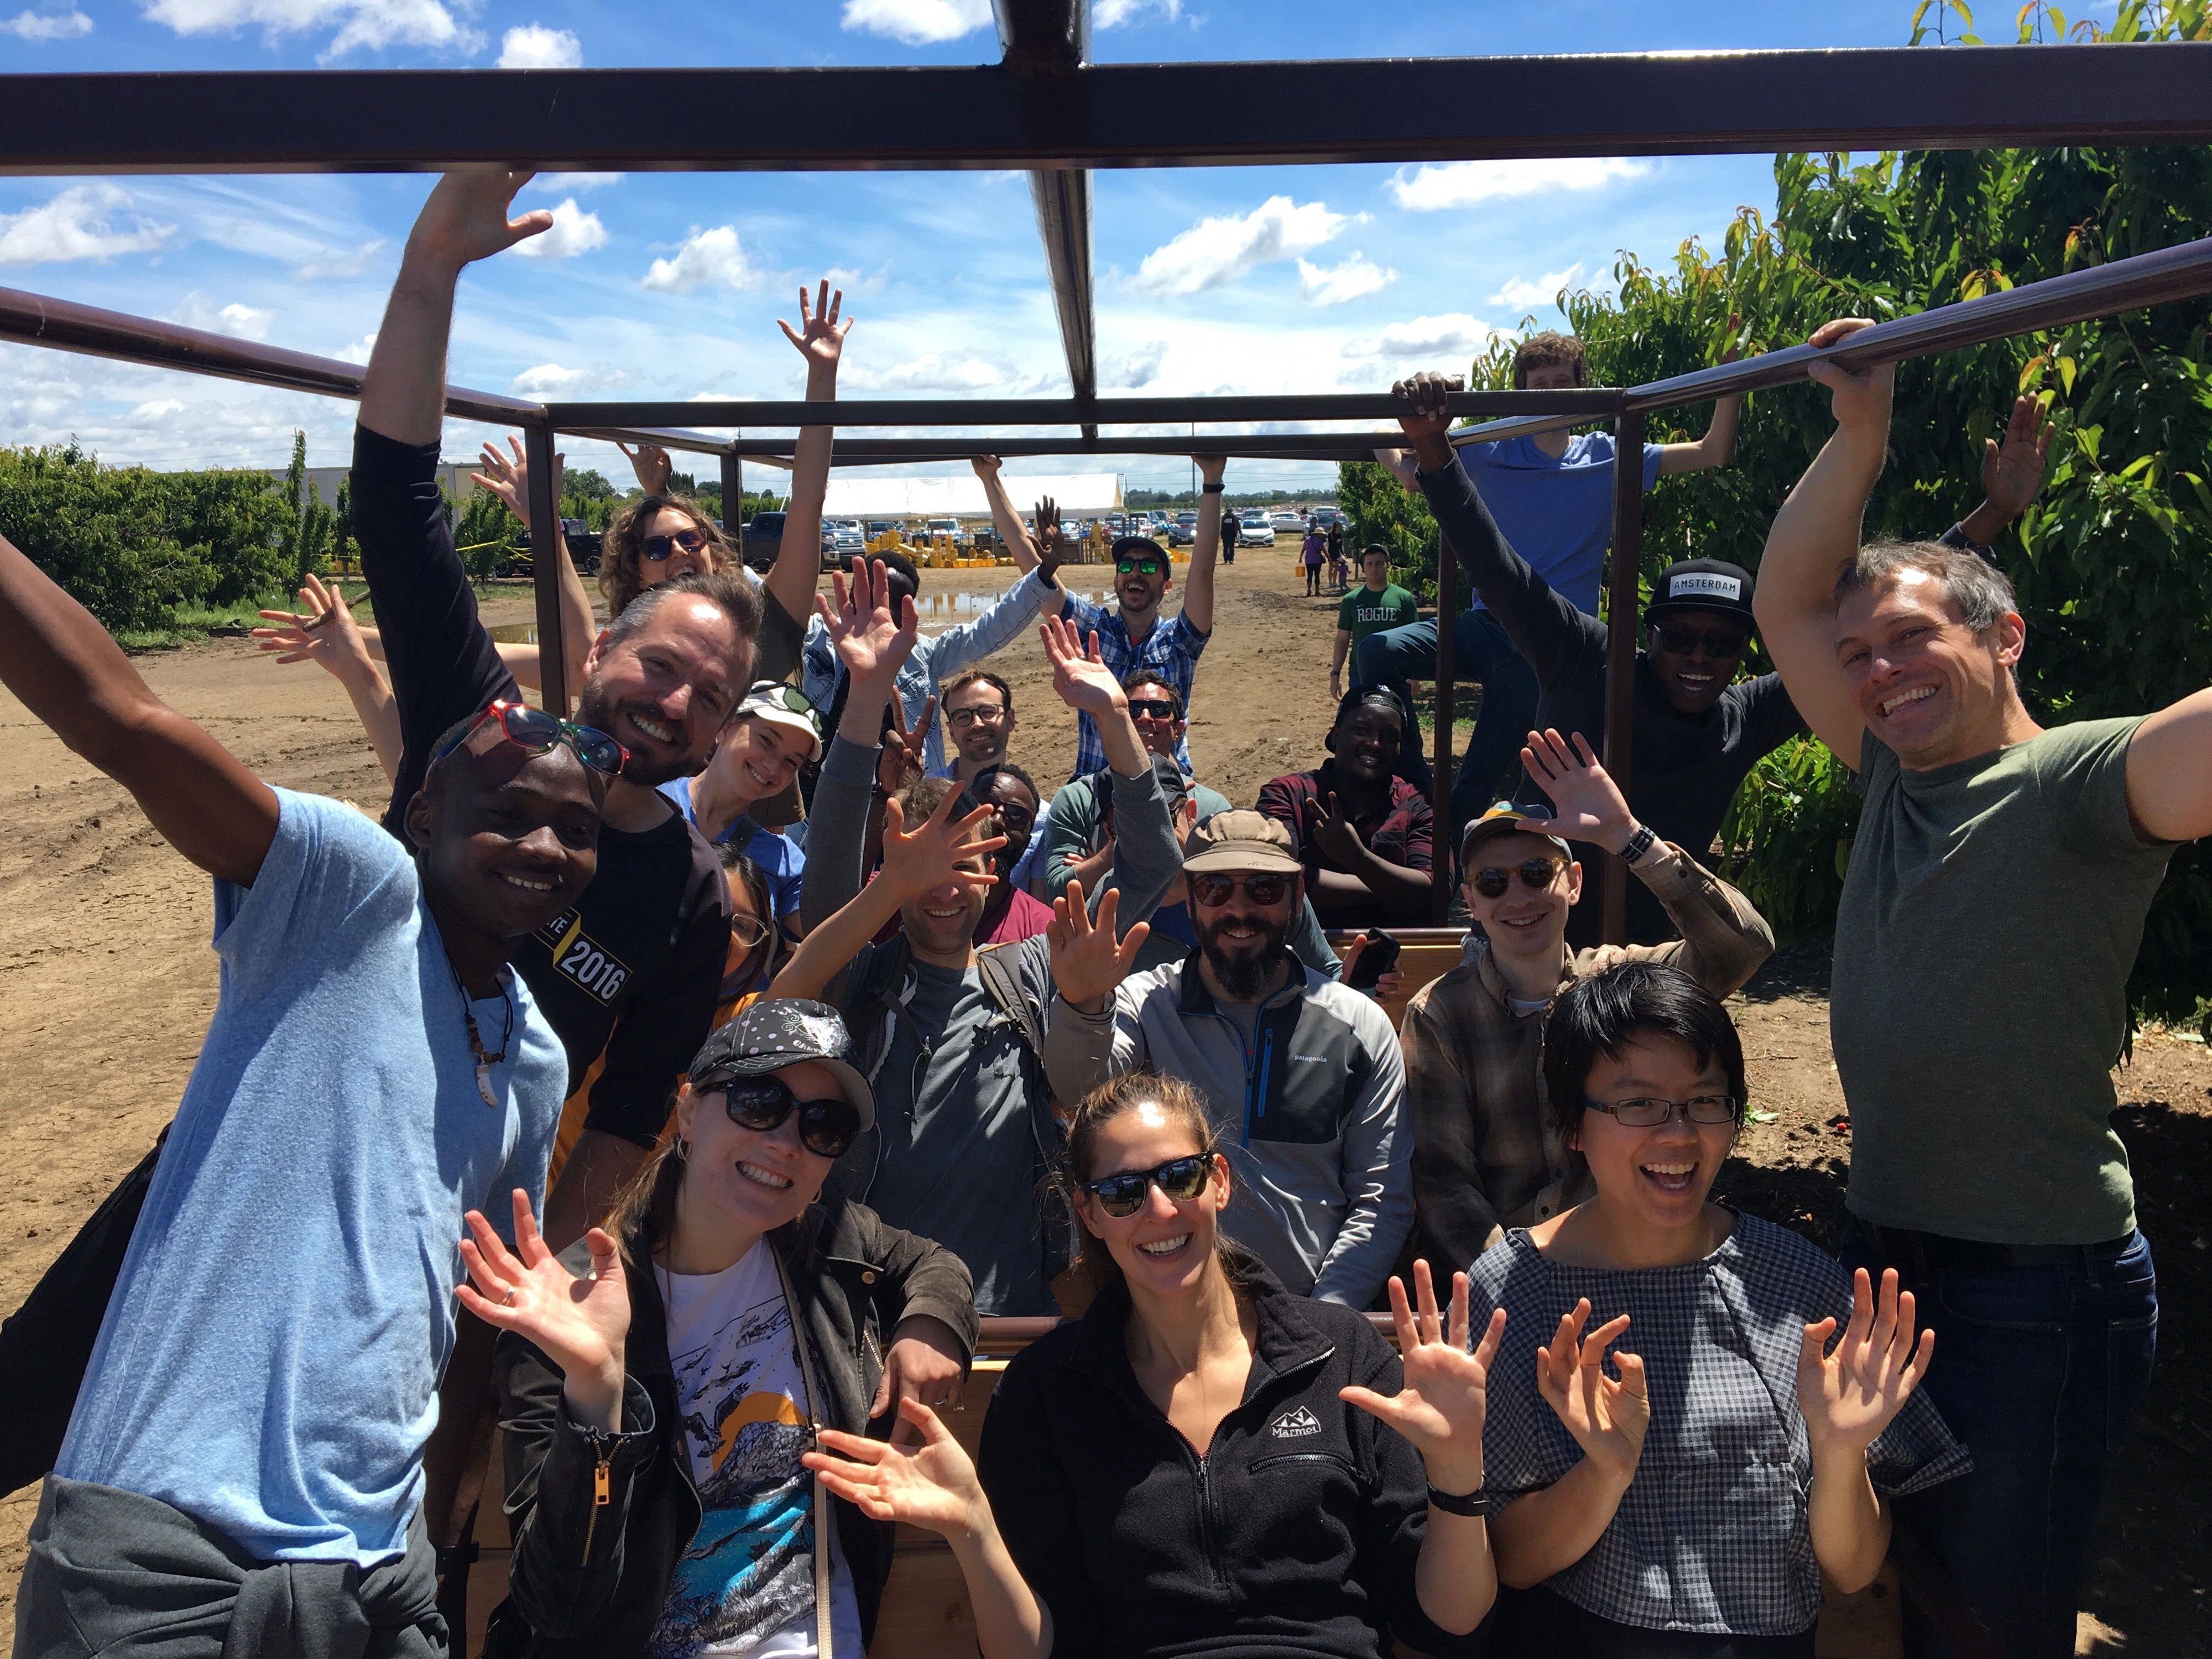 Meal Hero team waving while on a team outing to an orchard